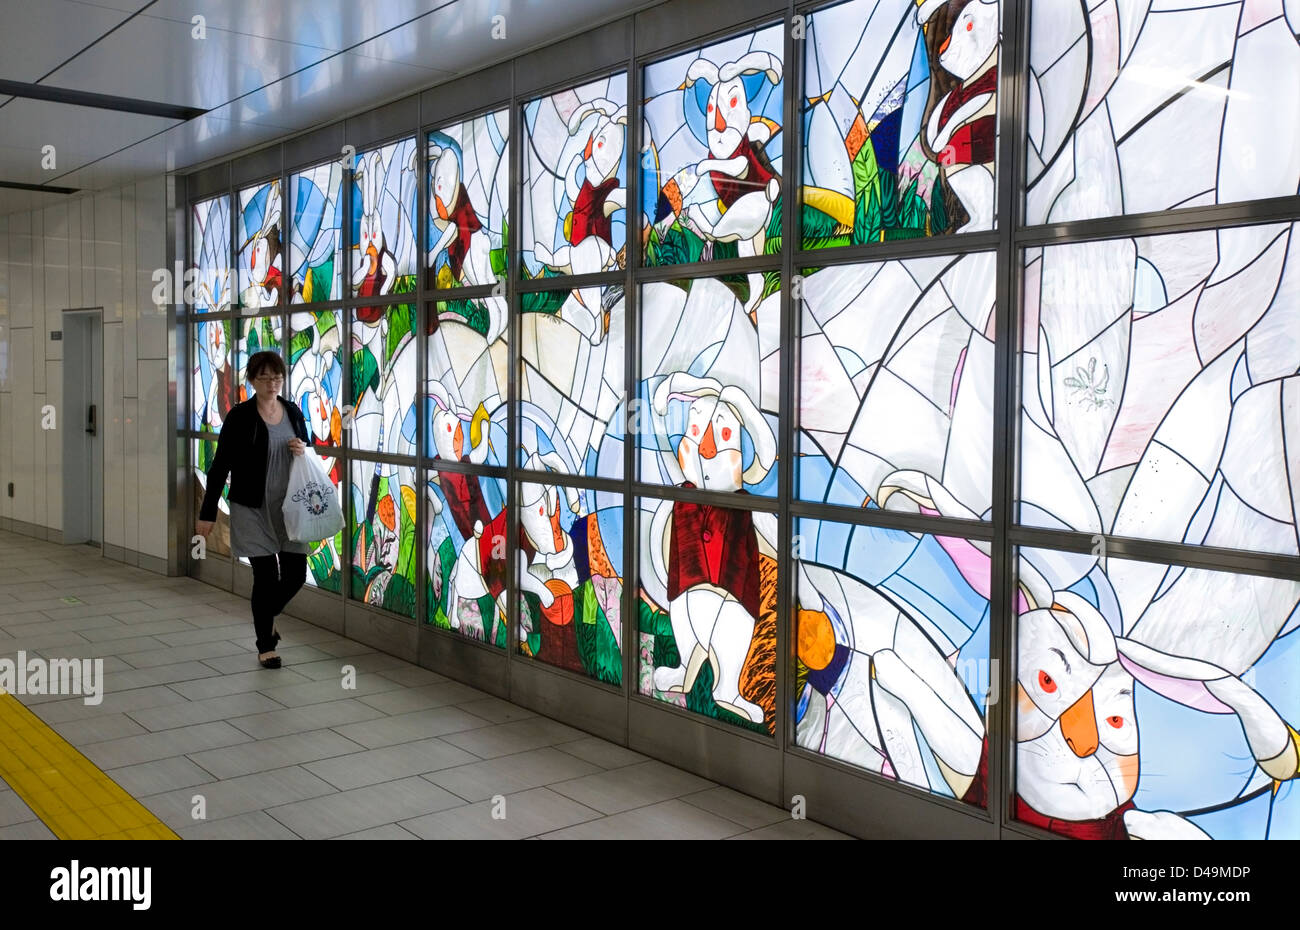 An illuminated stained glass art wall brightens an underground passageway in the Metro subway system of Tokyo. - Stock Image